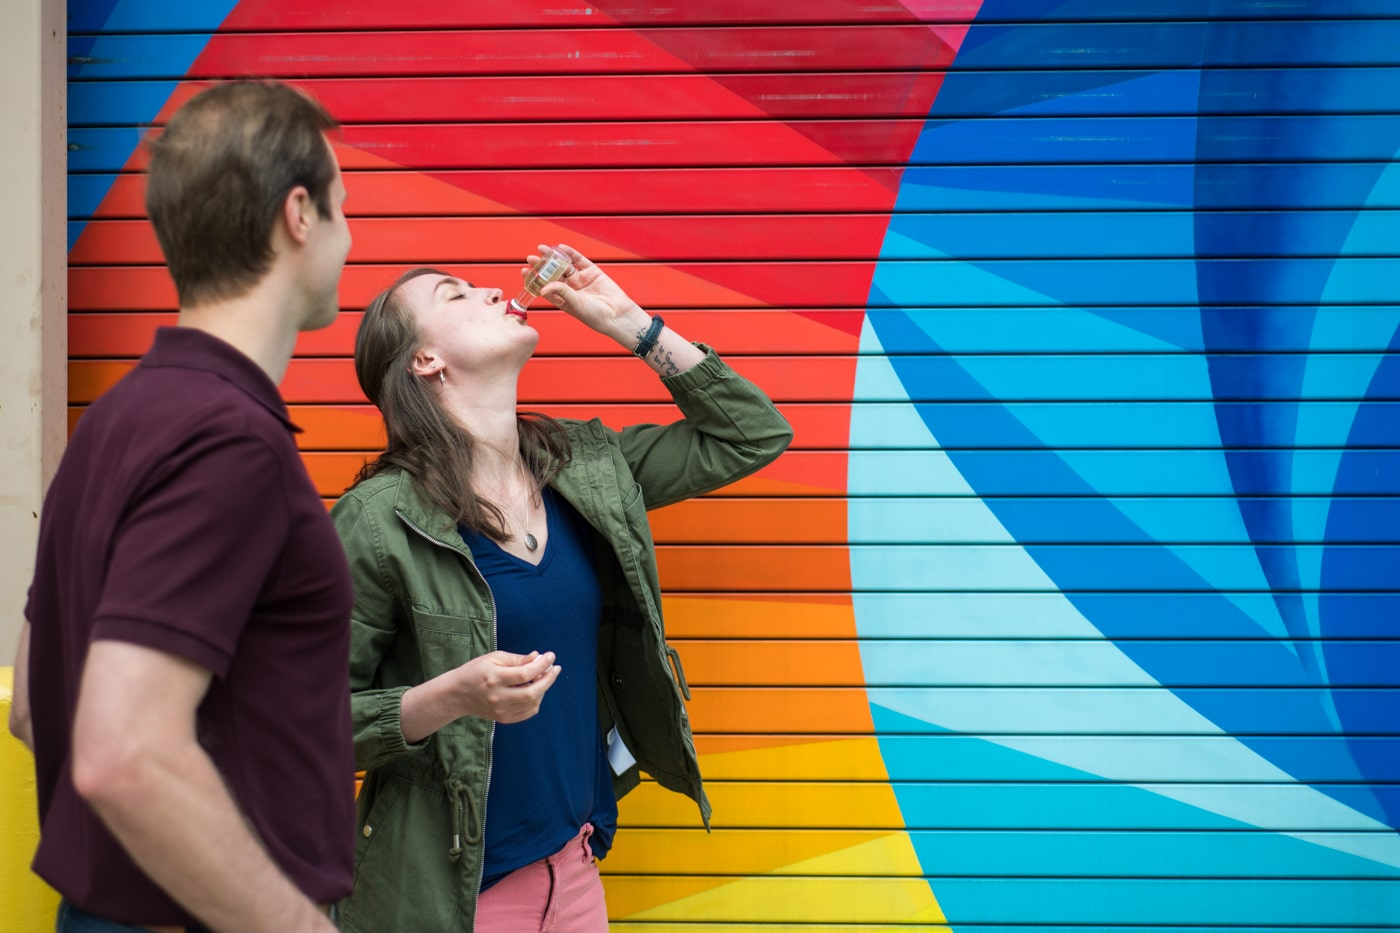 woman drinks from small bottle of alcohol during engagement photos